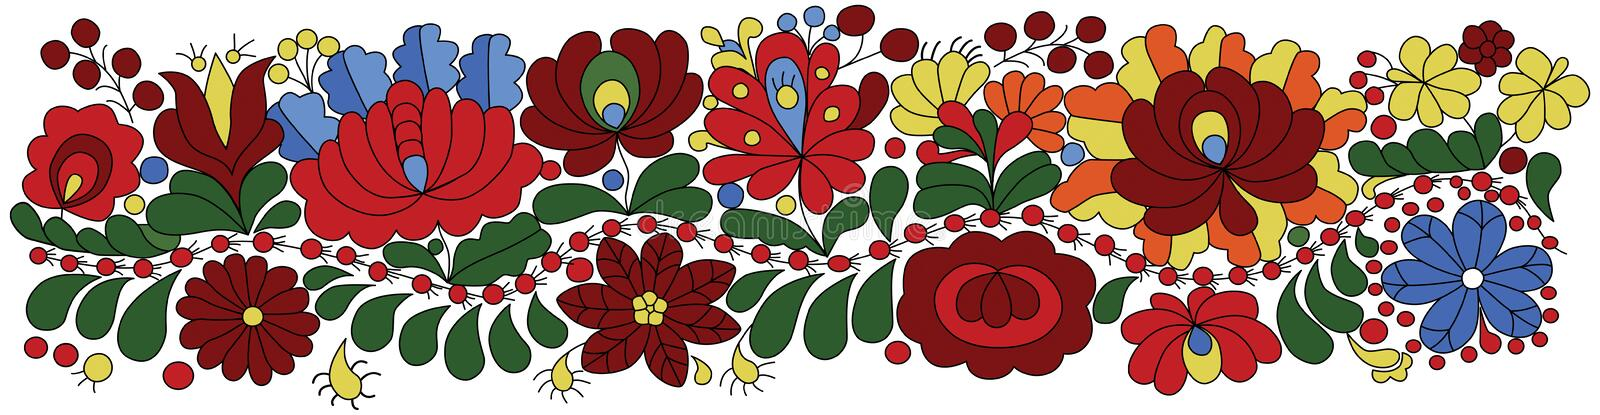 Hungarian Embroidery Pattern stock illustration